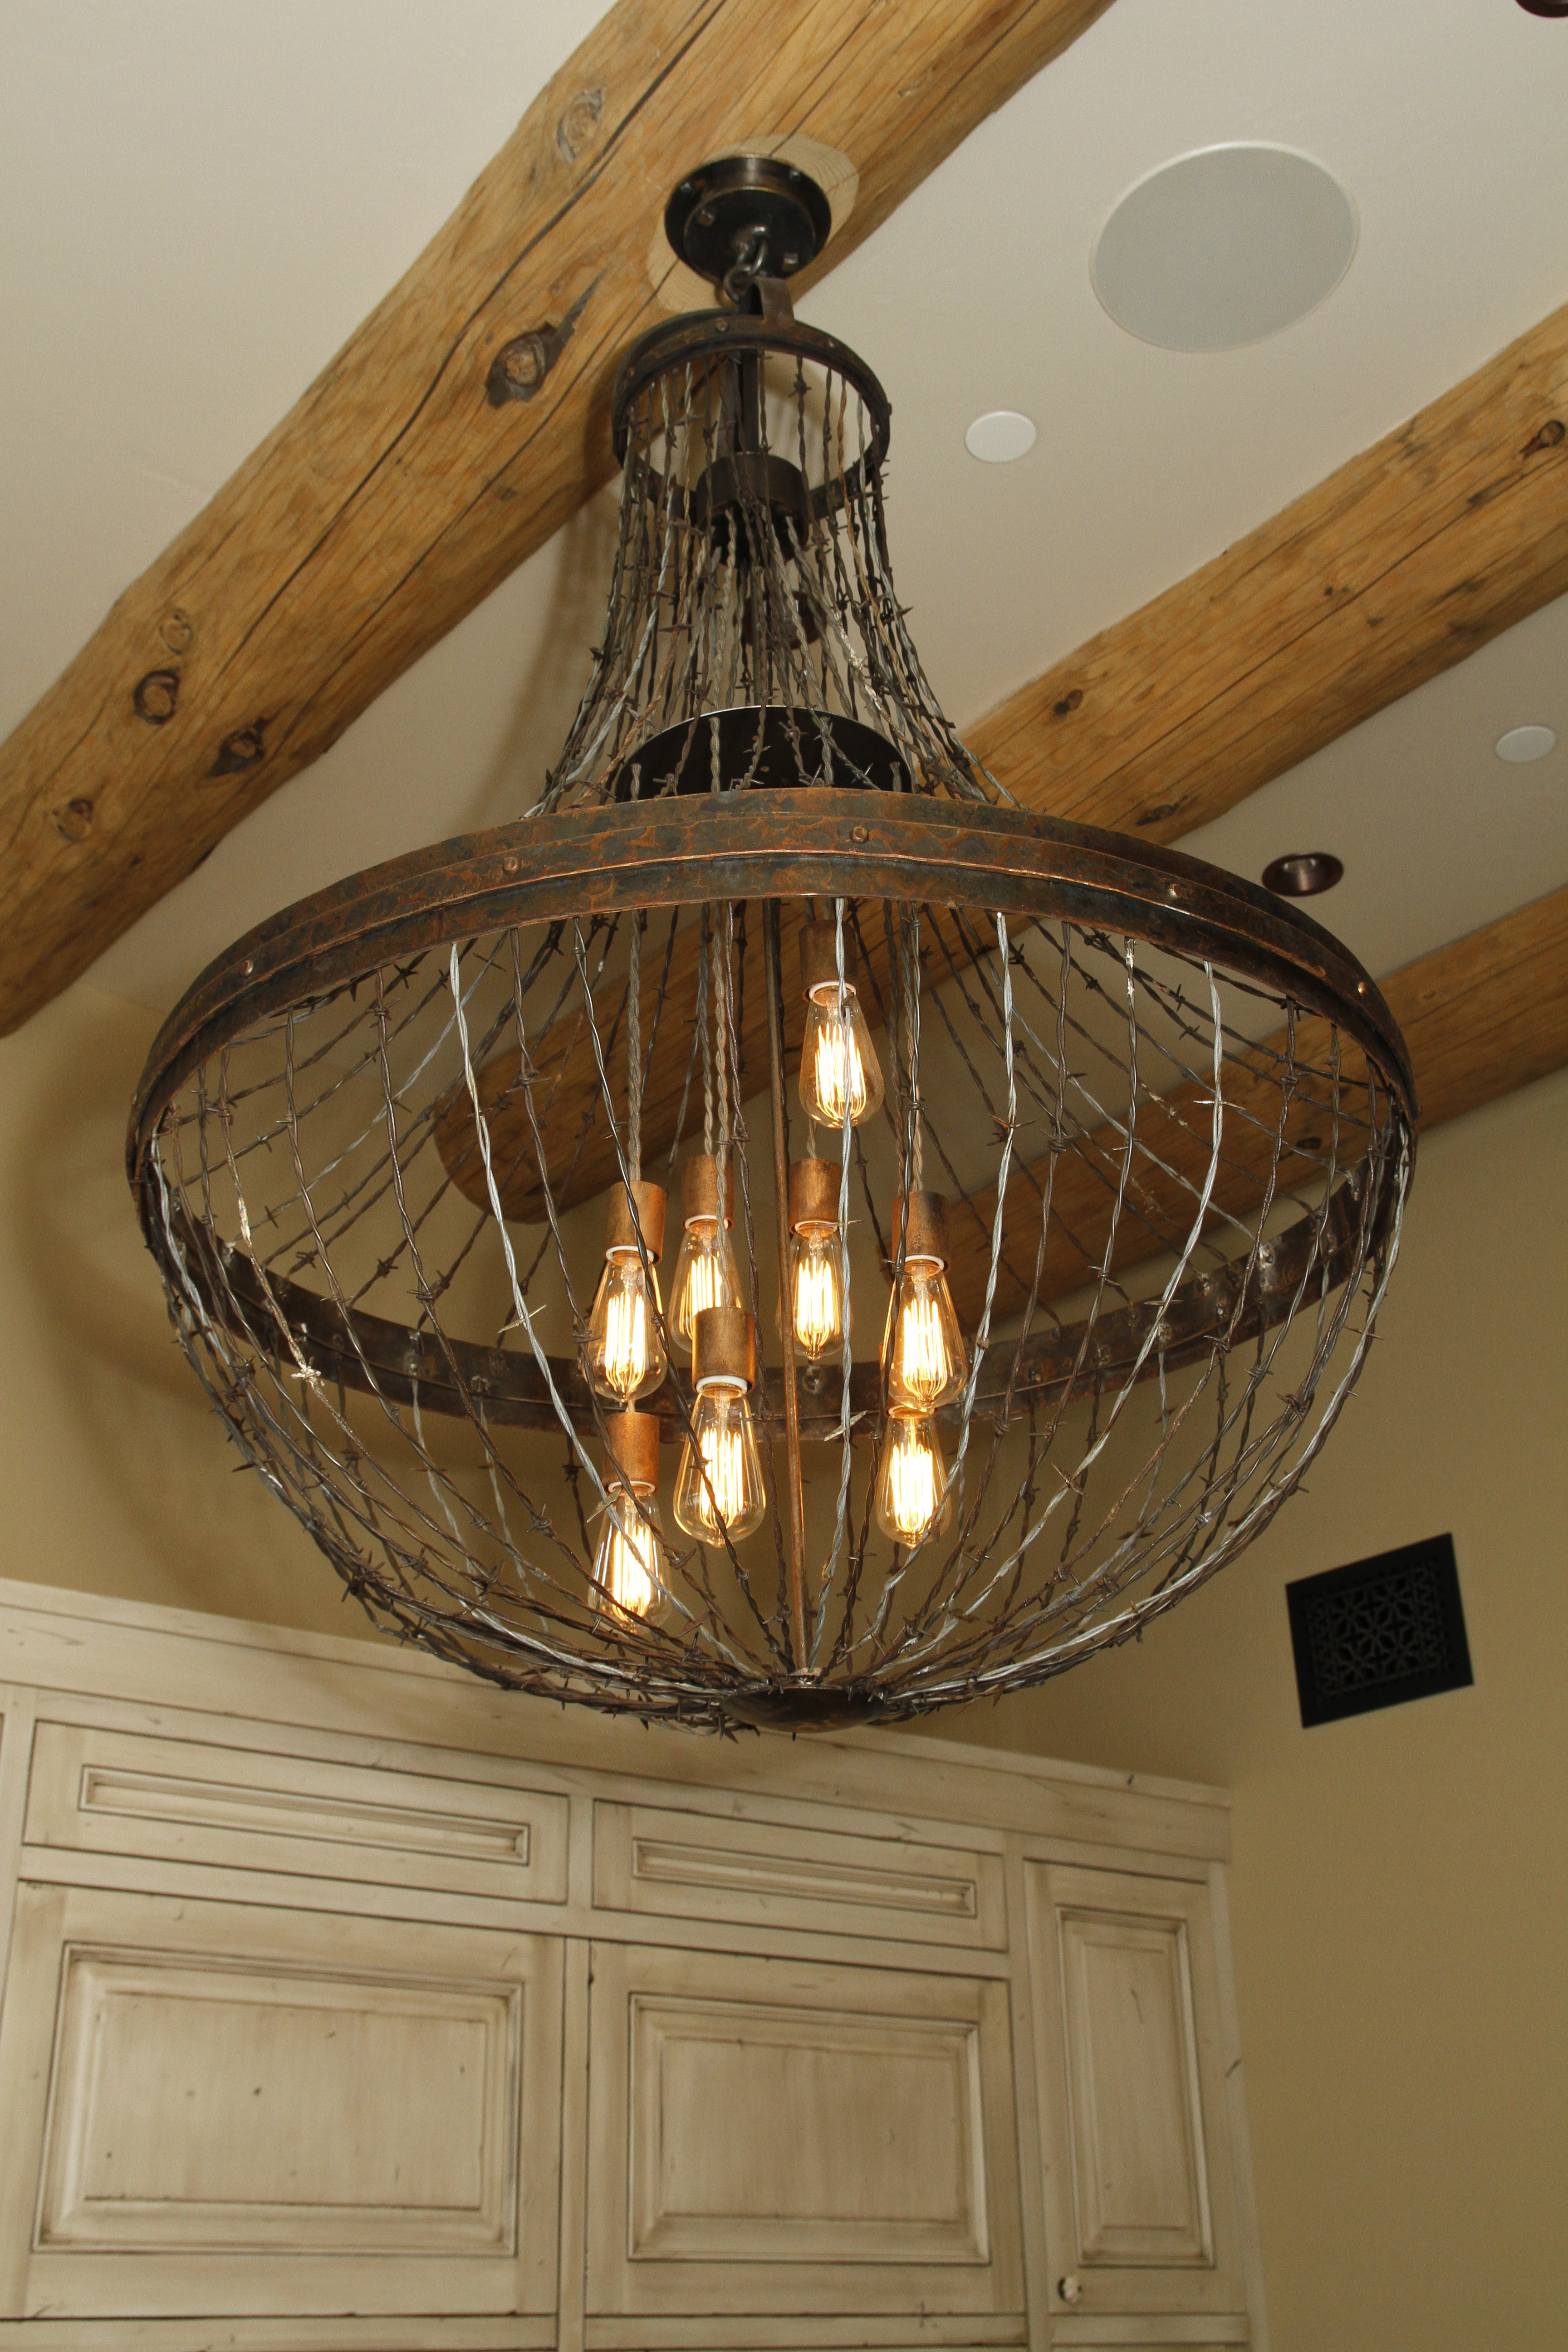 Barbed Wire Ceiling Lights Wiring Info A Chandelier Ironglass Lighting Rh 3 Way Switch Fan Light Kit